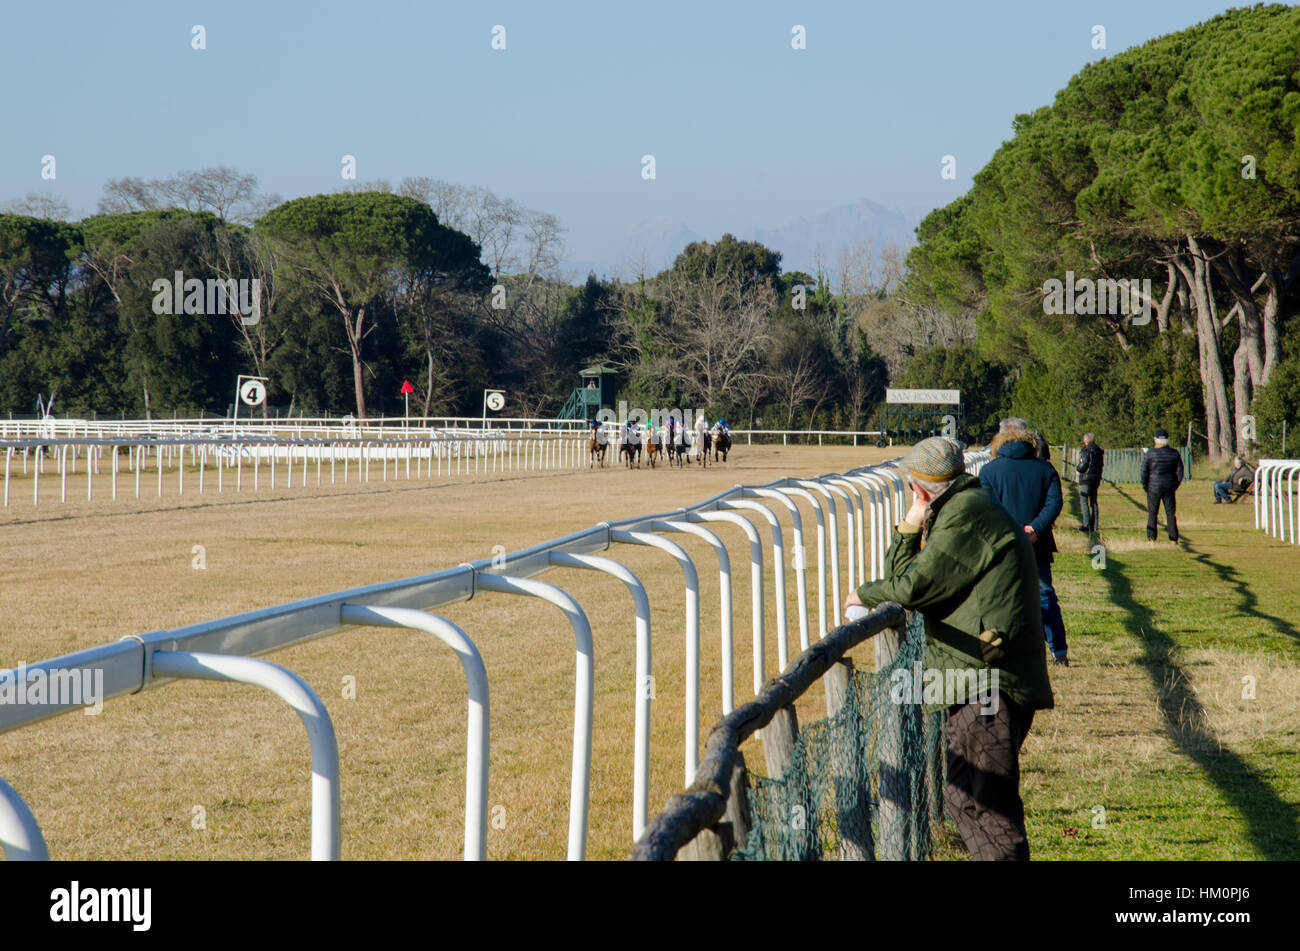 Spectators at  a horse race in Pisa, Italy - Stock Image